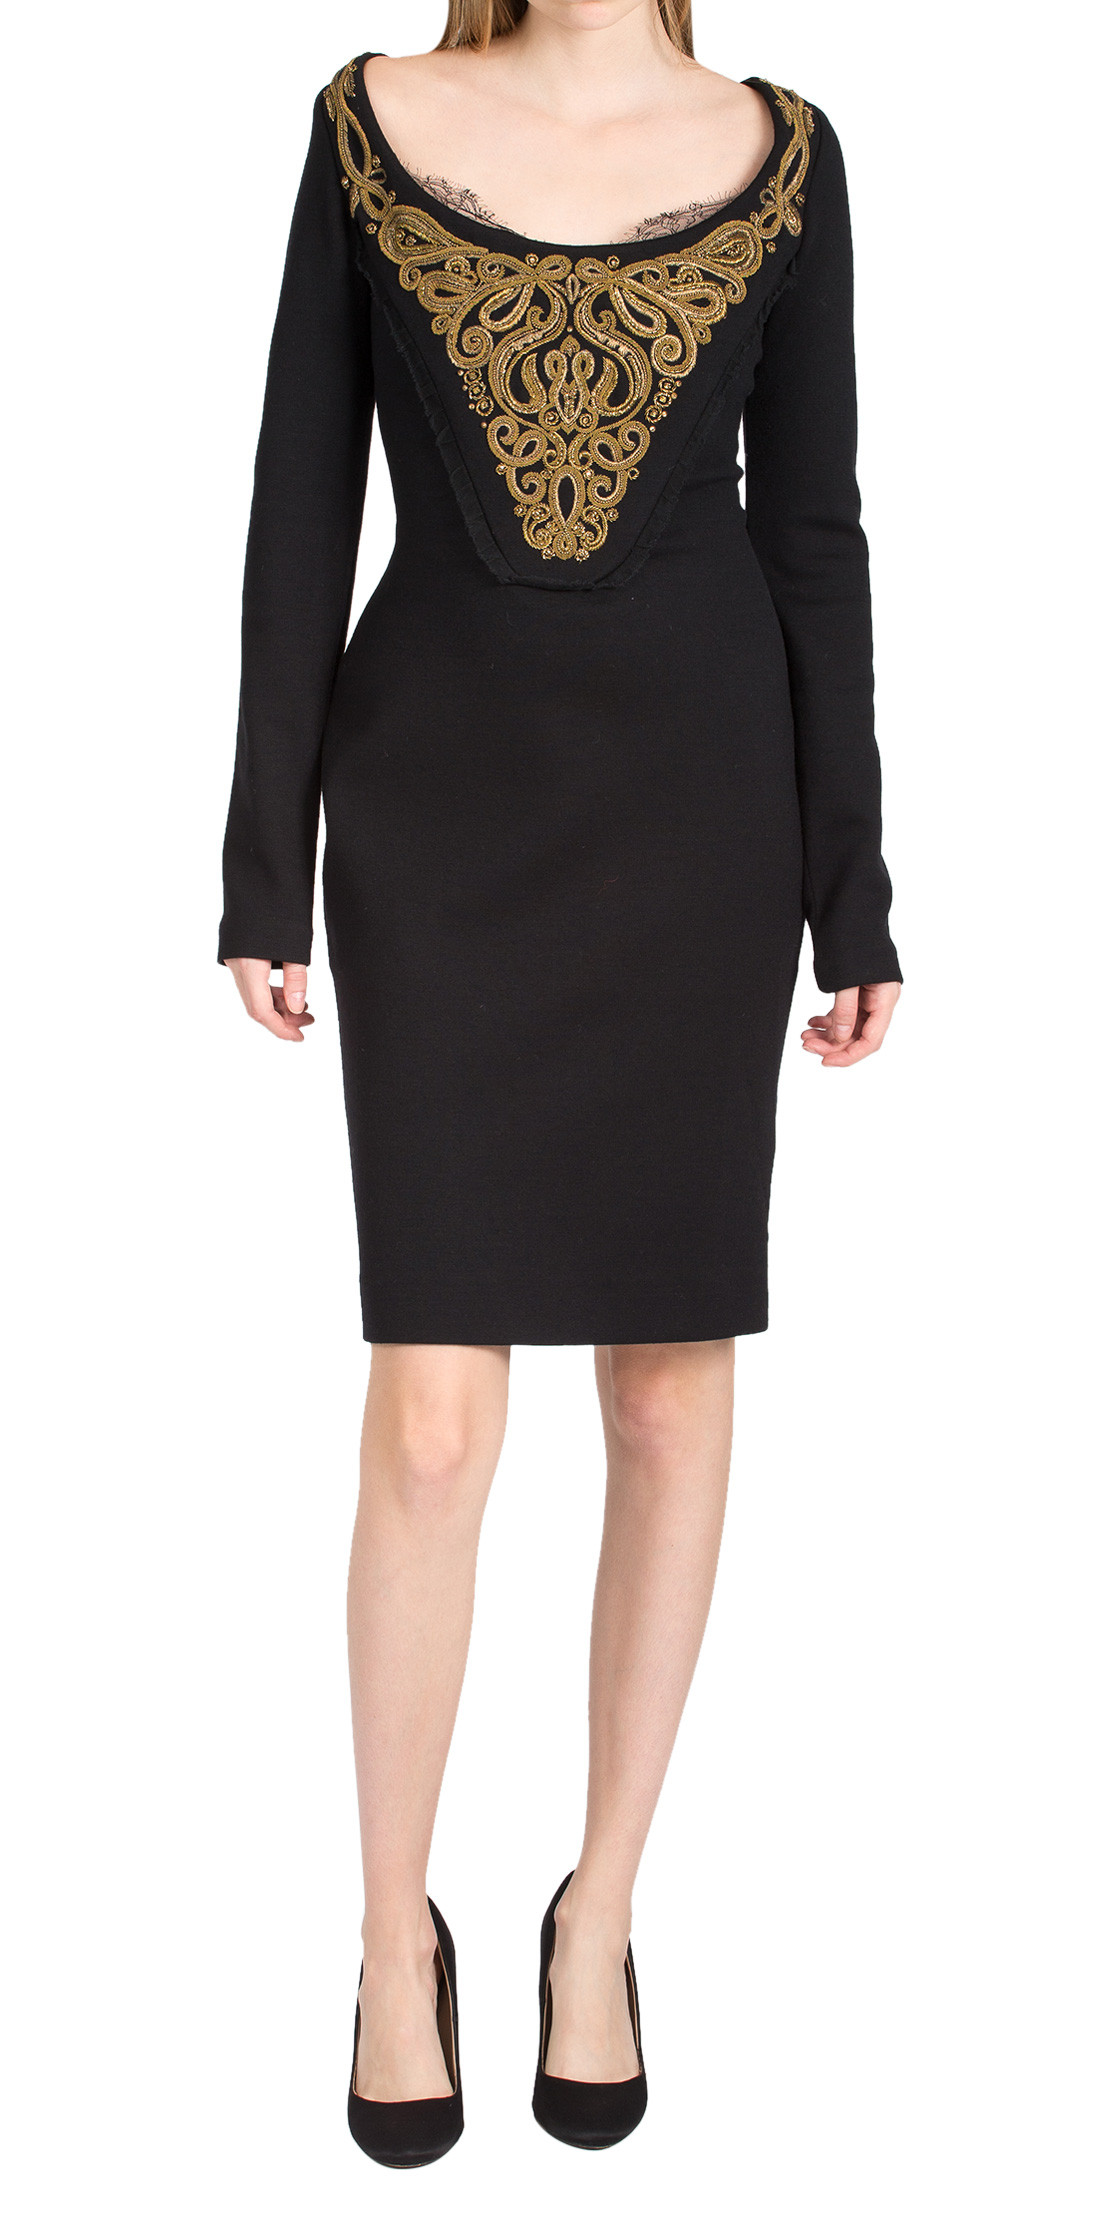 Emilio Pucci Embellished Long Sleeve Dress